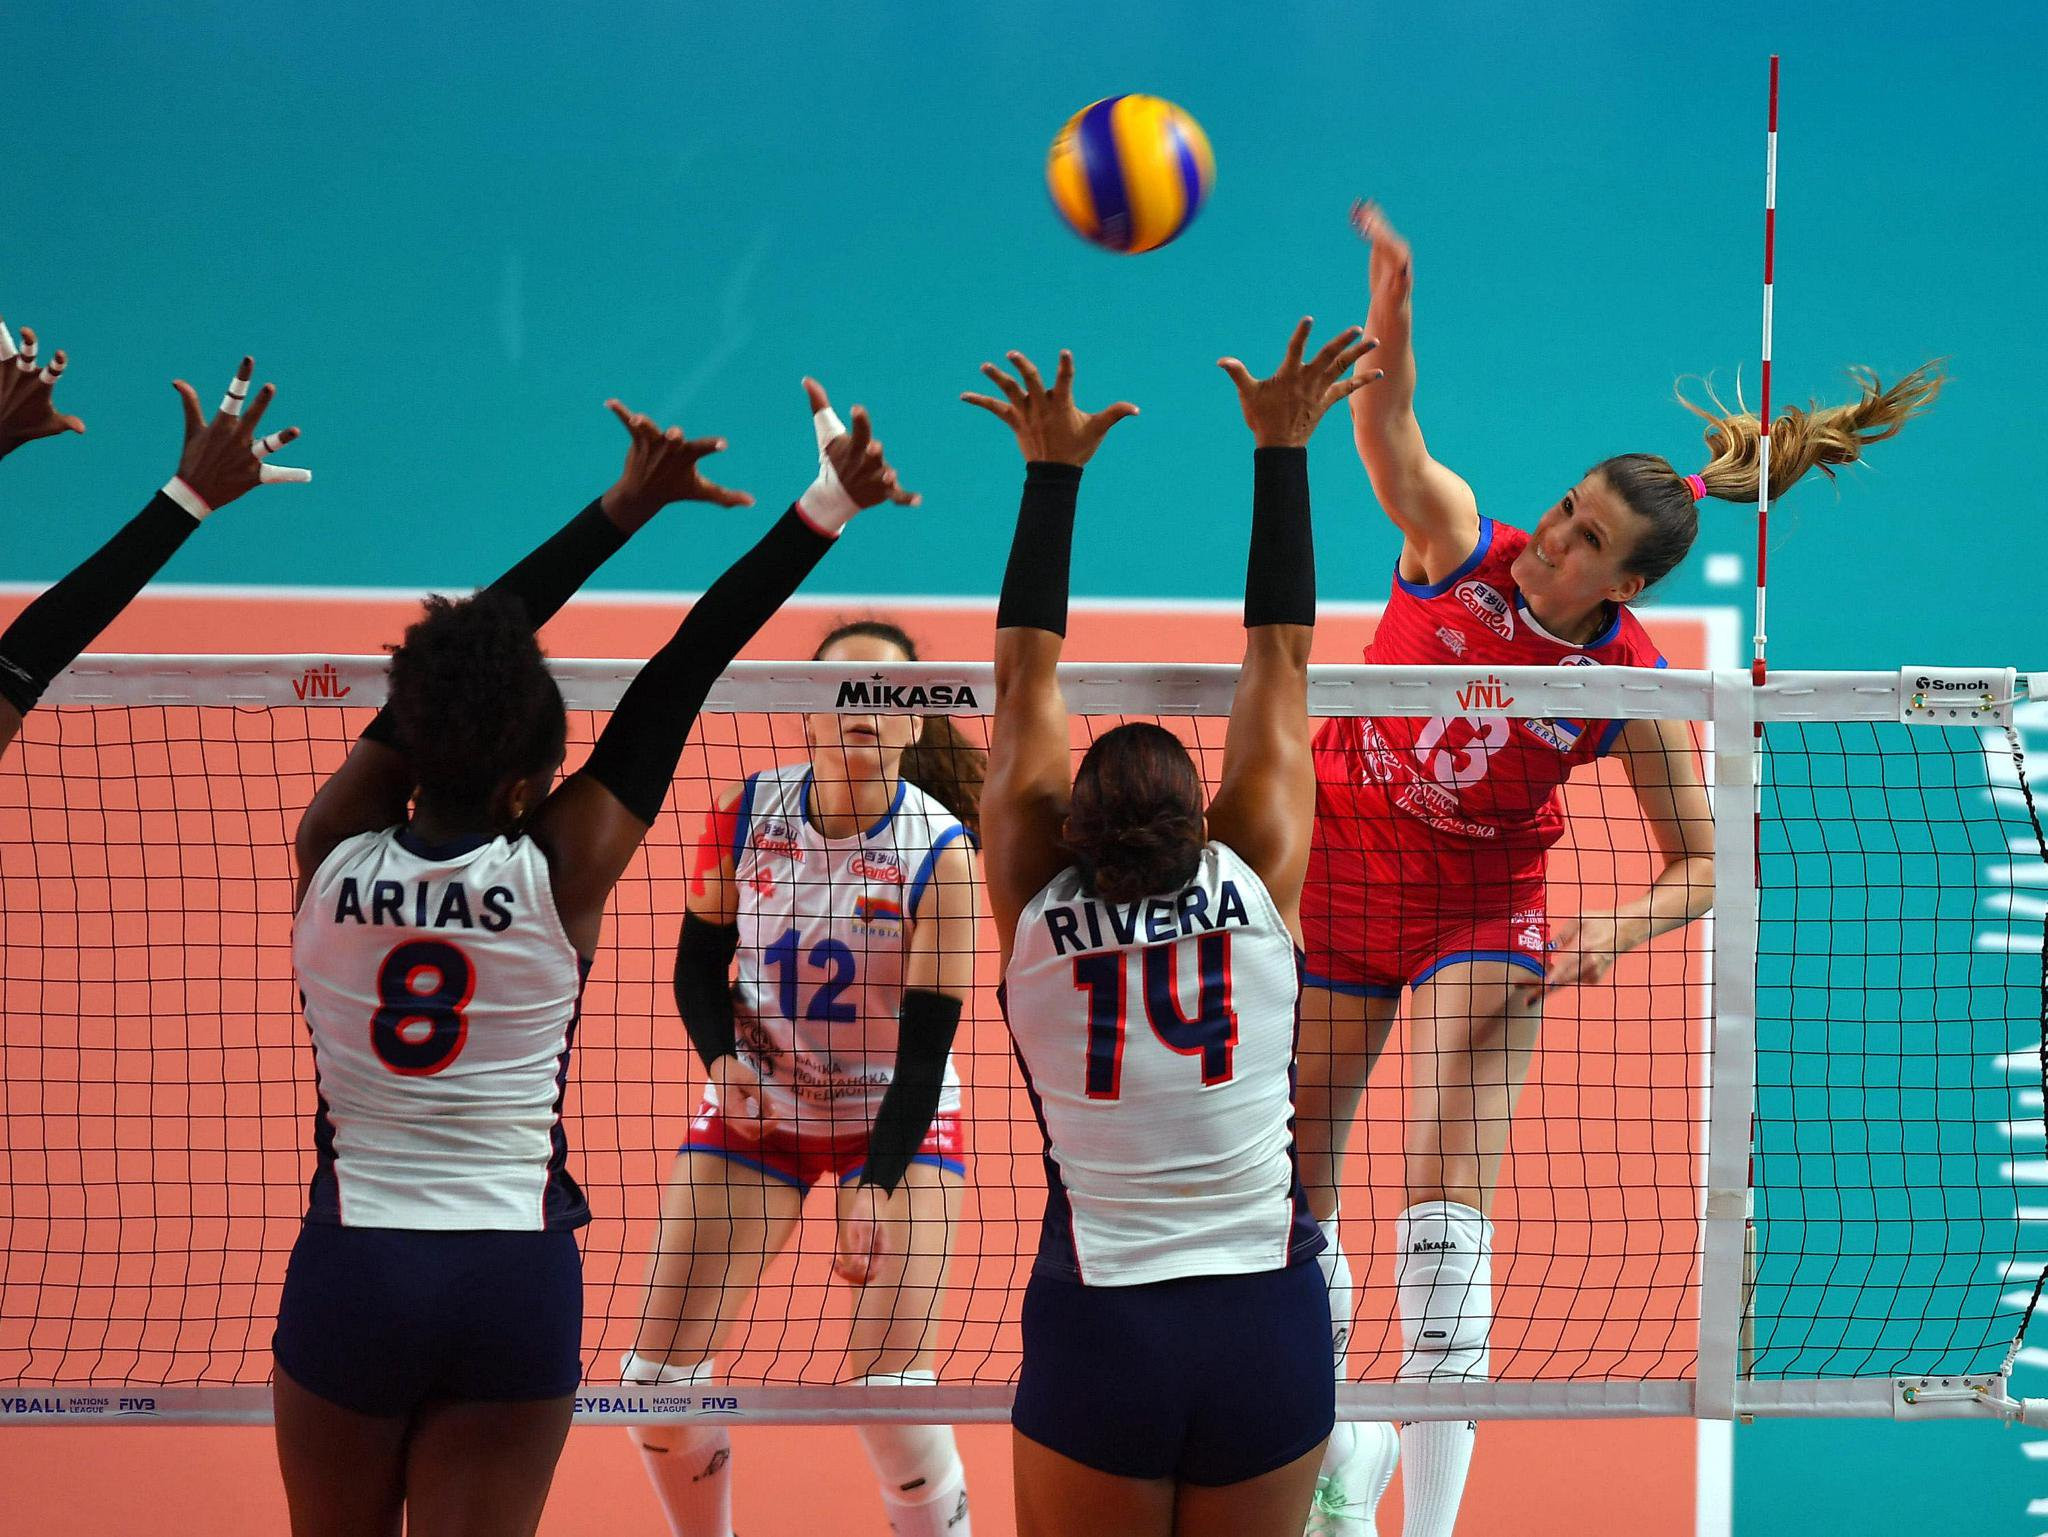 World champions Serbia get back to winning ways in FIVB Women's Nations League